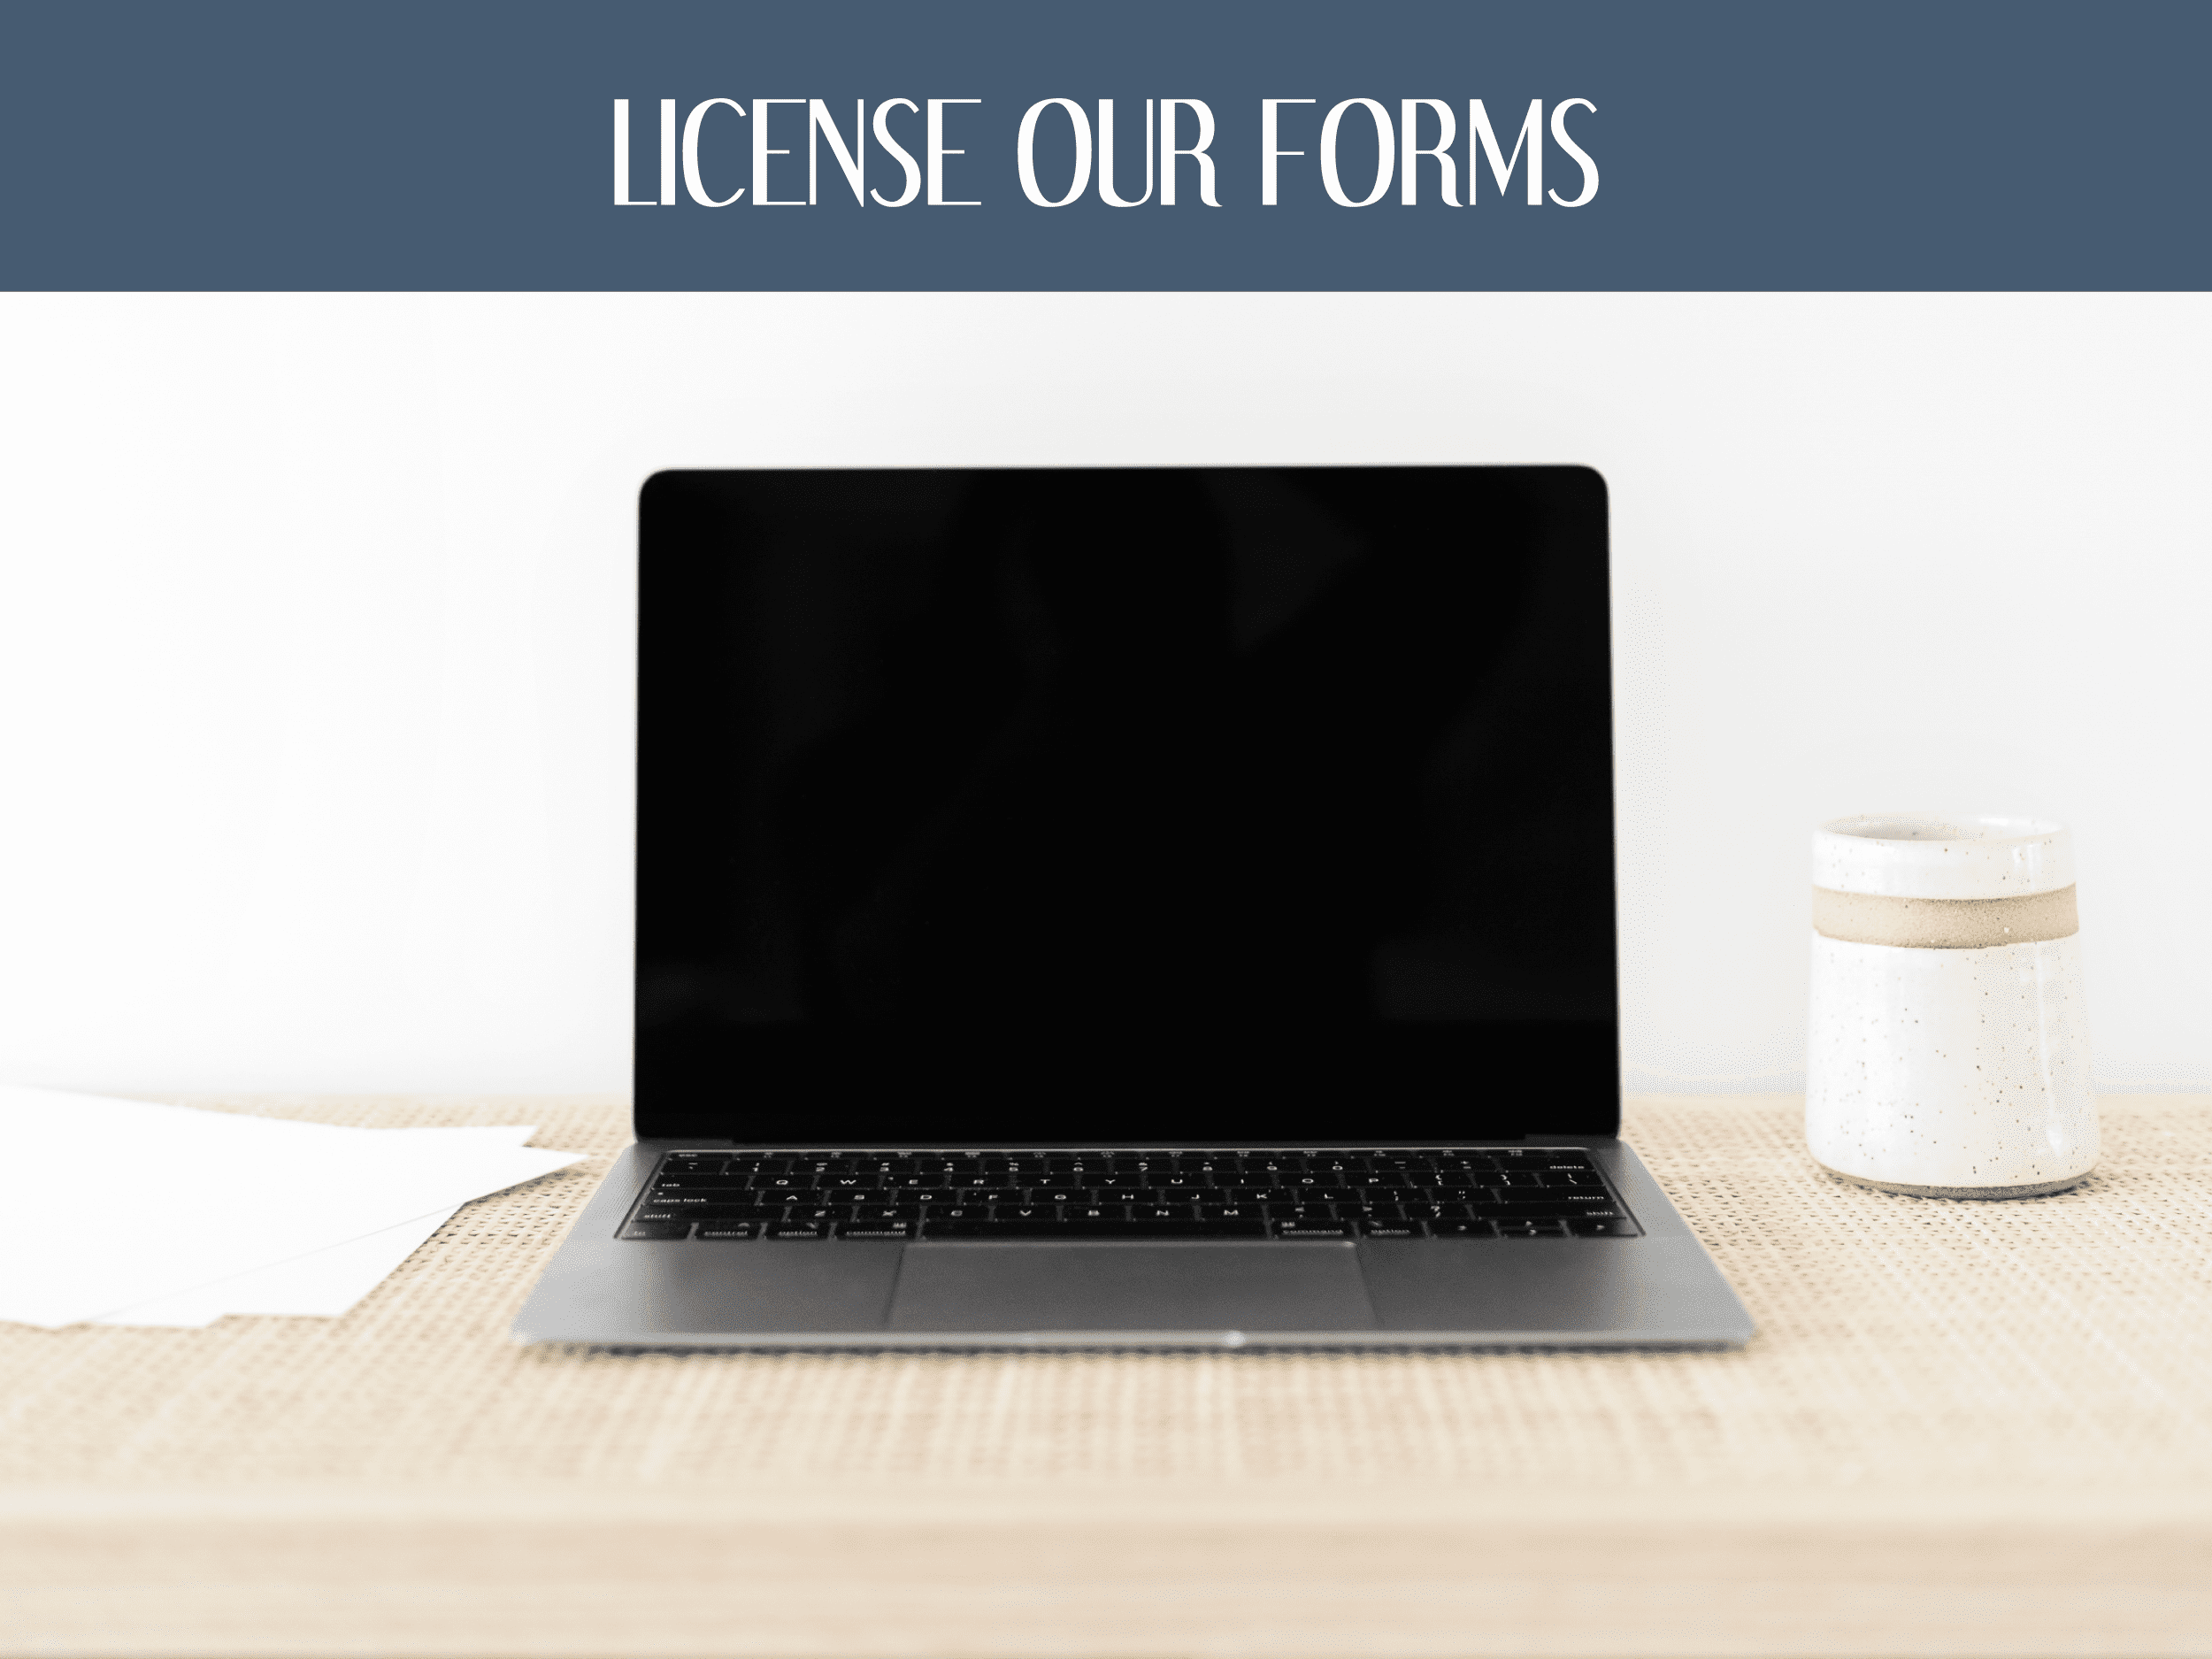 License-Our-Forms